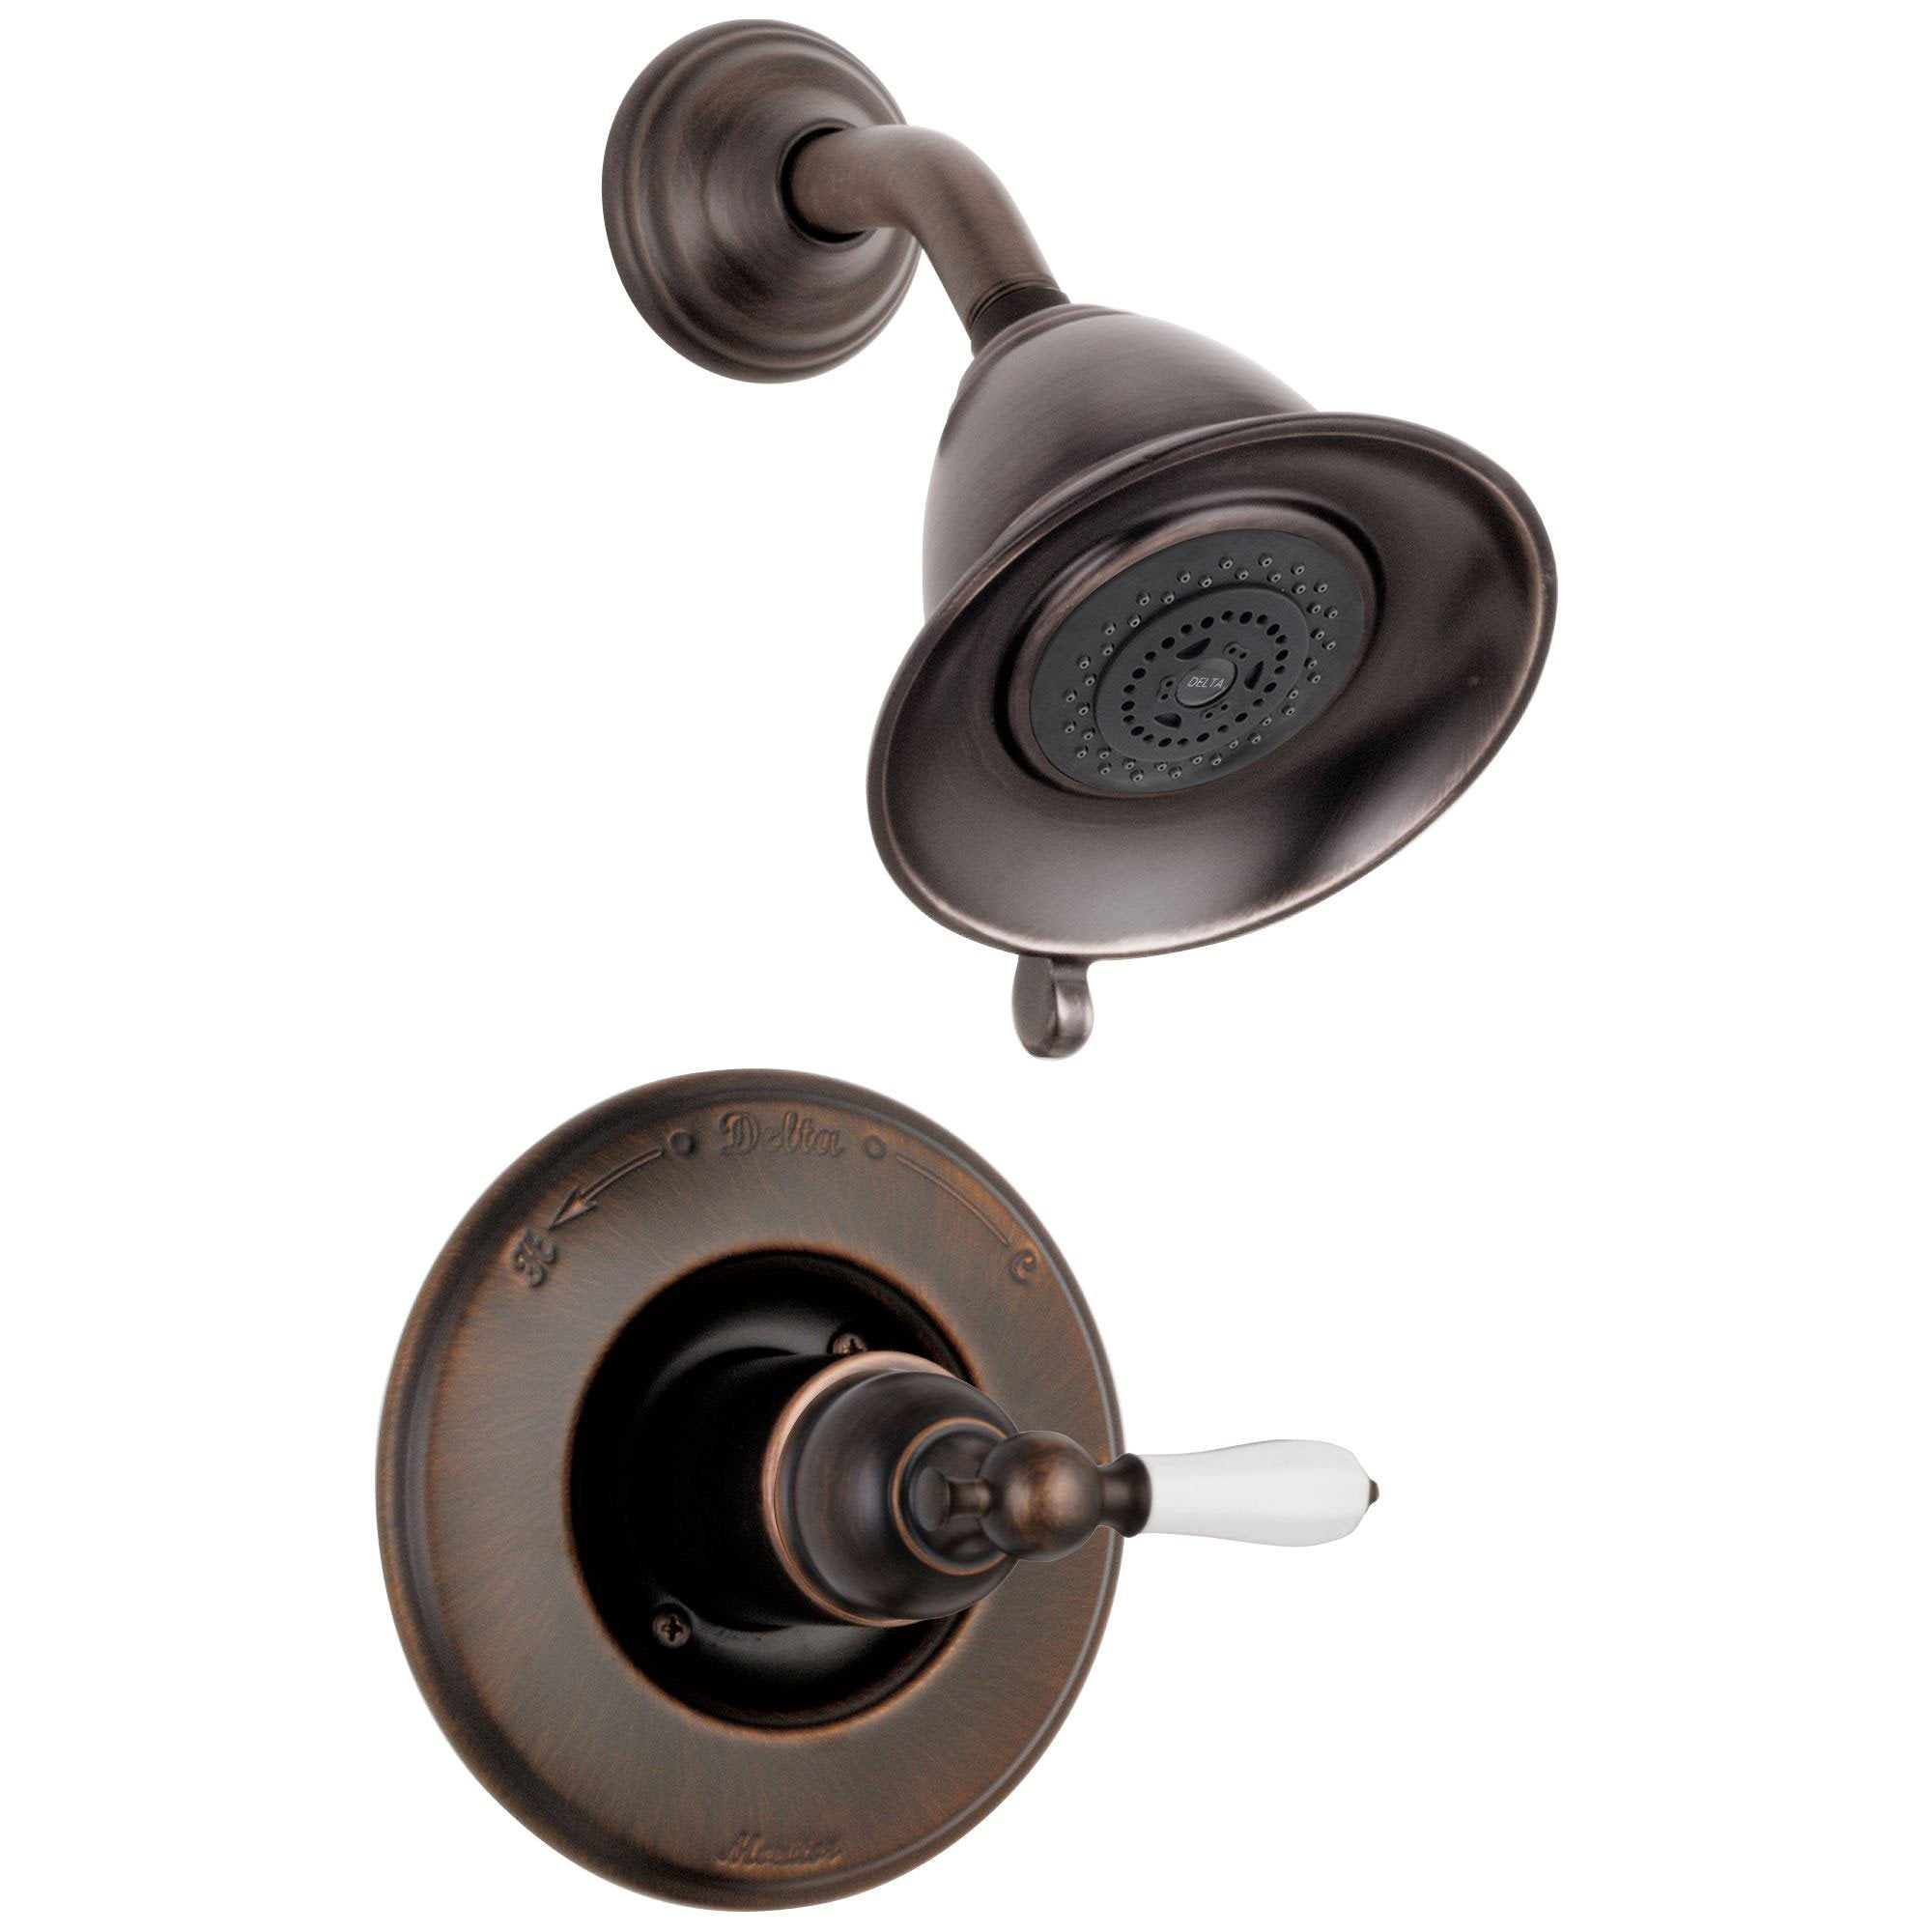 Delta Traditional Victorian Venetian Bronze Finish 14 Series Shower Only Faucet INCLUDES Rough-in Valve and White Lever Handle D1196V